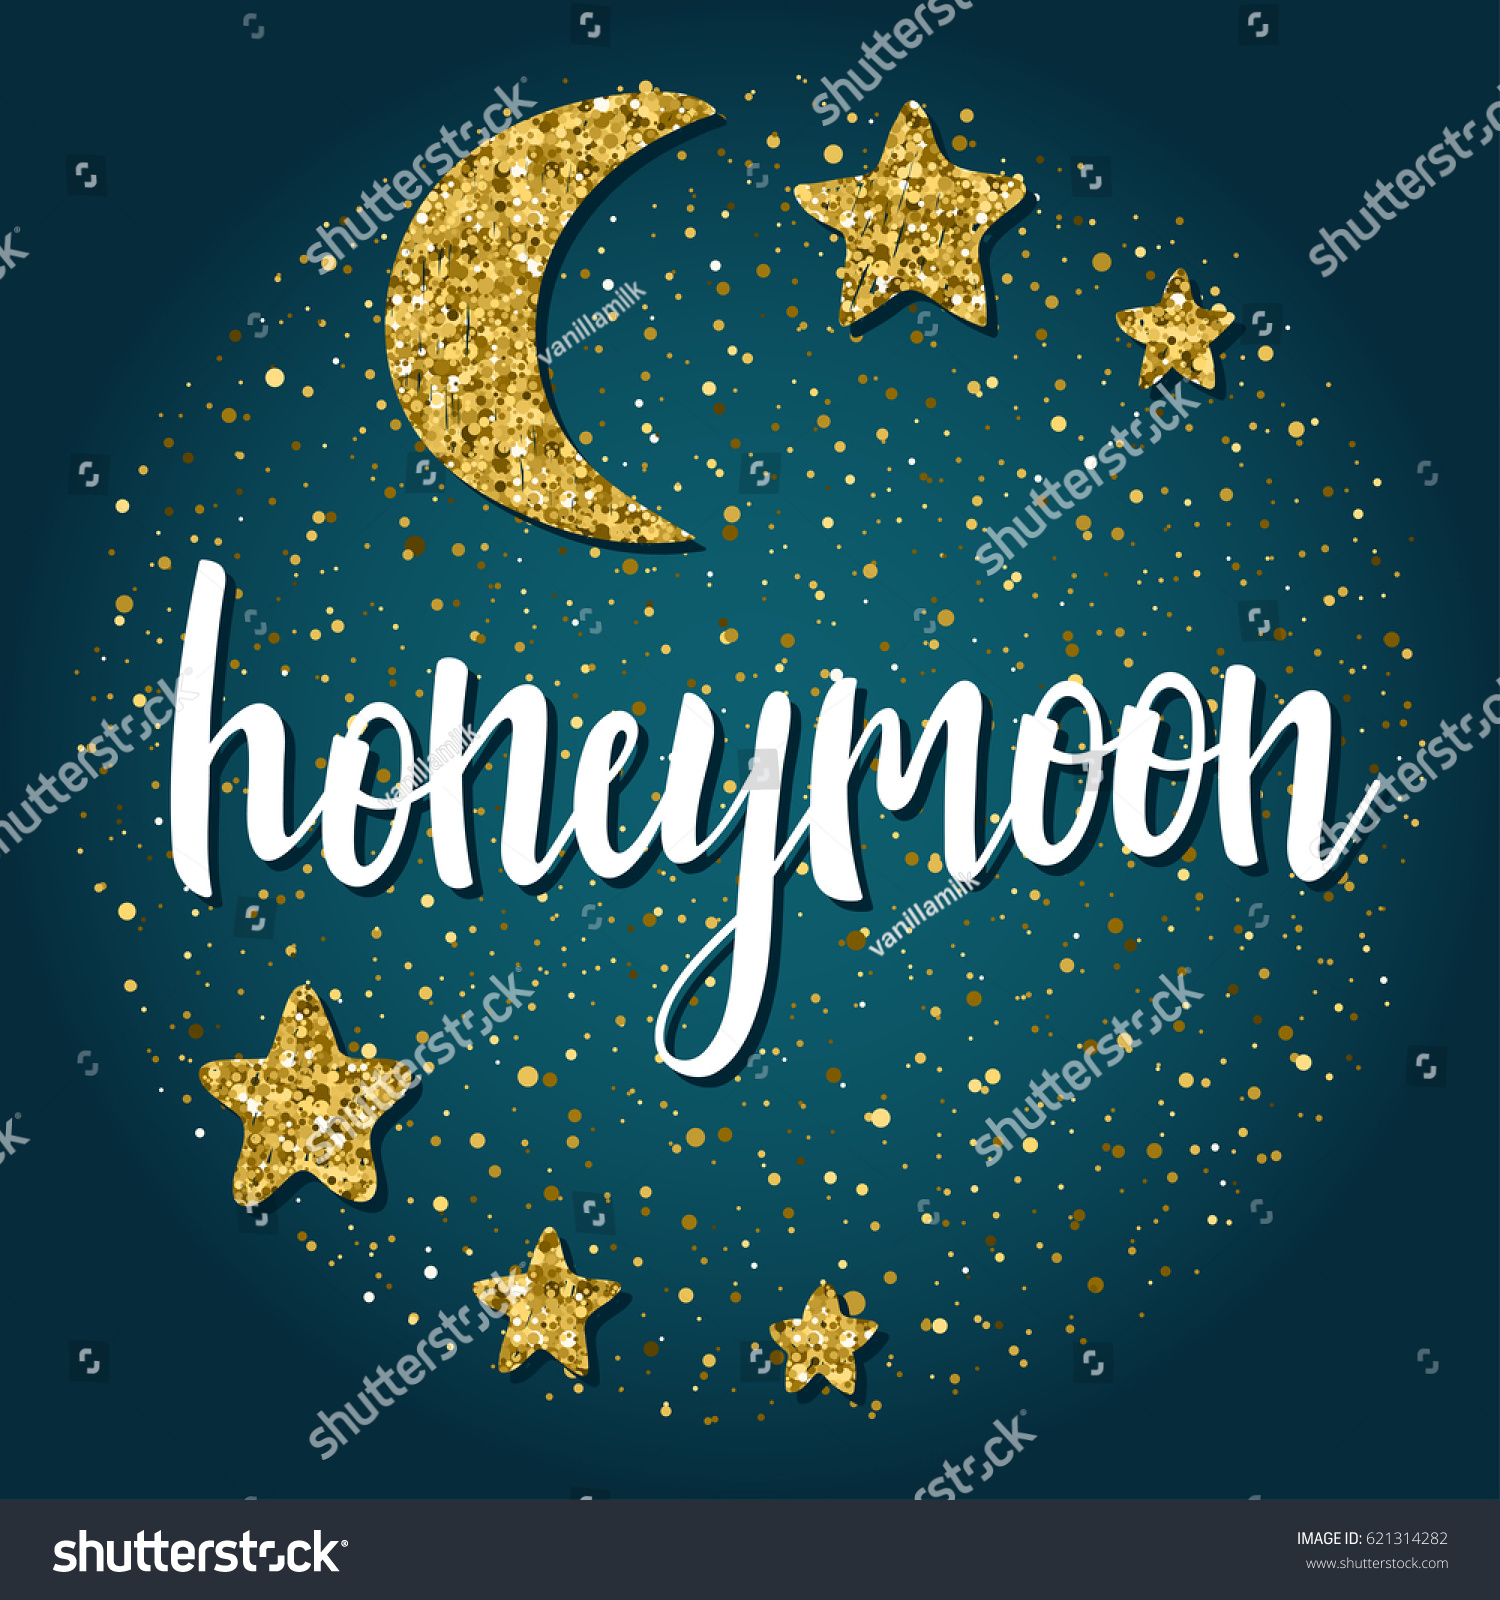 Honeymoon greeting cards images greeting card examples honeymoon handwritten romantic quote lettering hand stock vector honeymoon handwritten romantic quote lettering hand drawn moon kristyandbryce Images